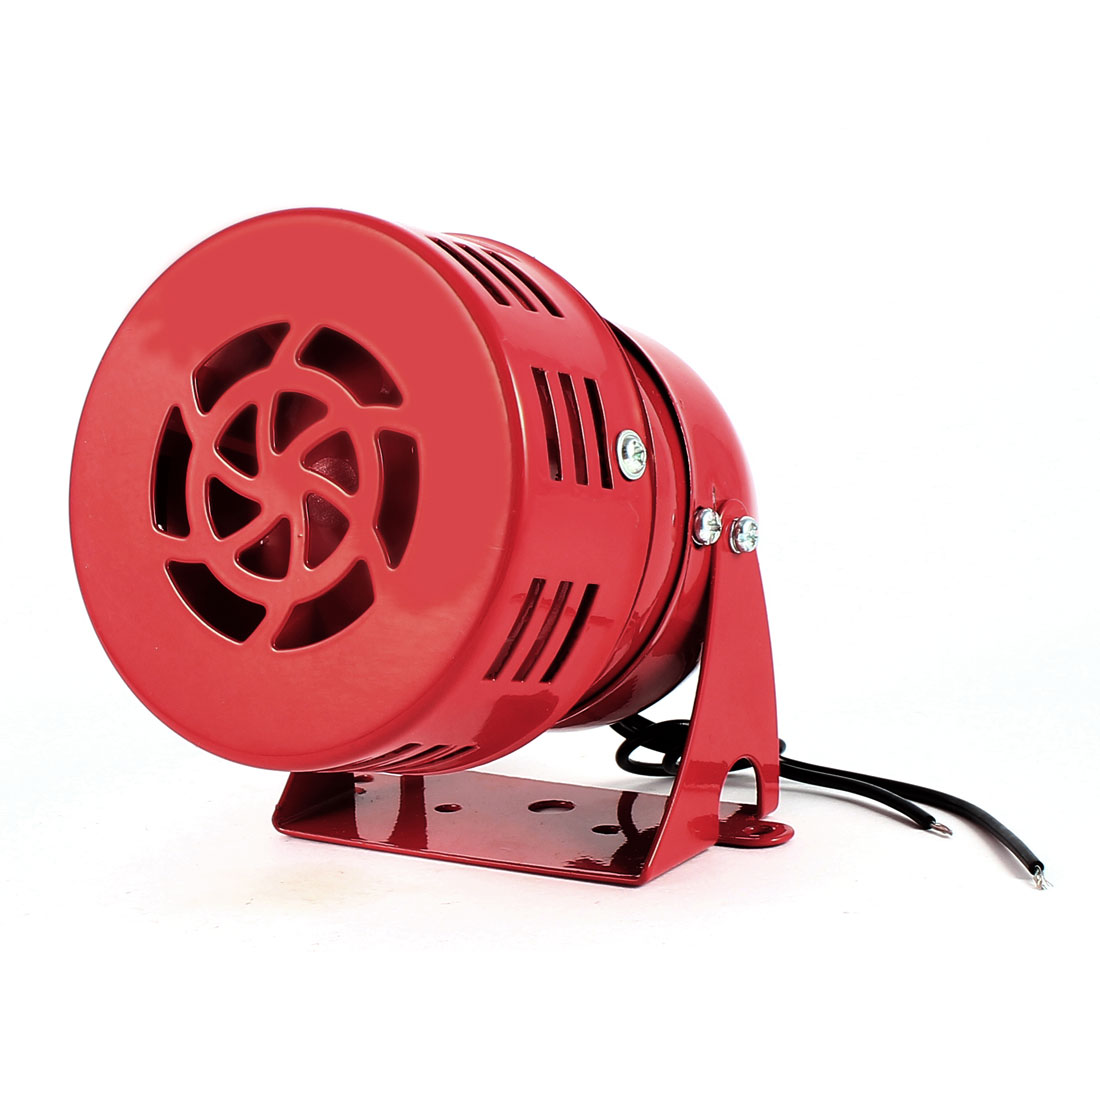 School Factory Fire Alarm Security System Electric Mini Siren Red AC 220V N-190